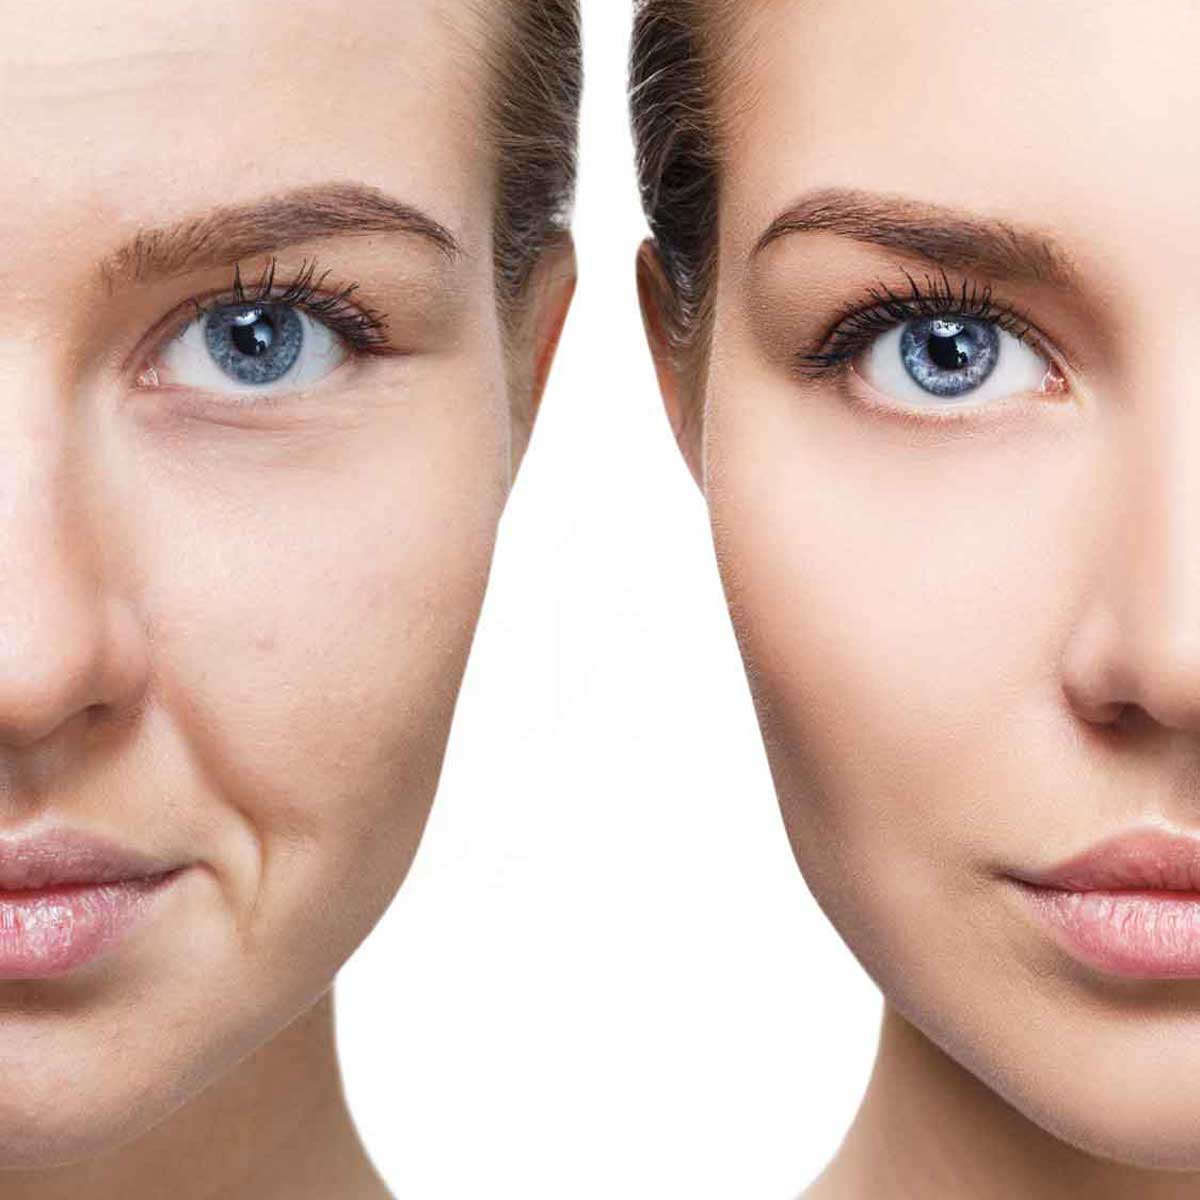 Face Treatments essex southend on sea body aesthetics microneedling